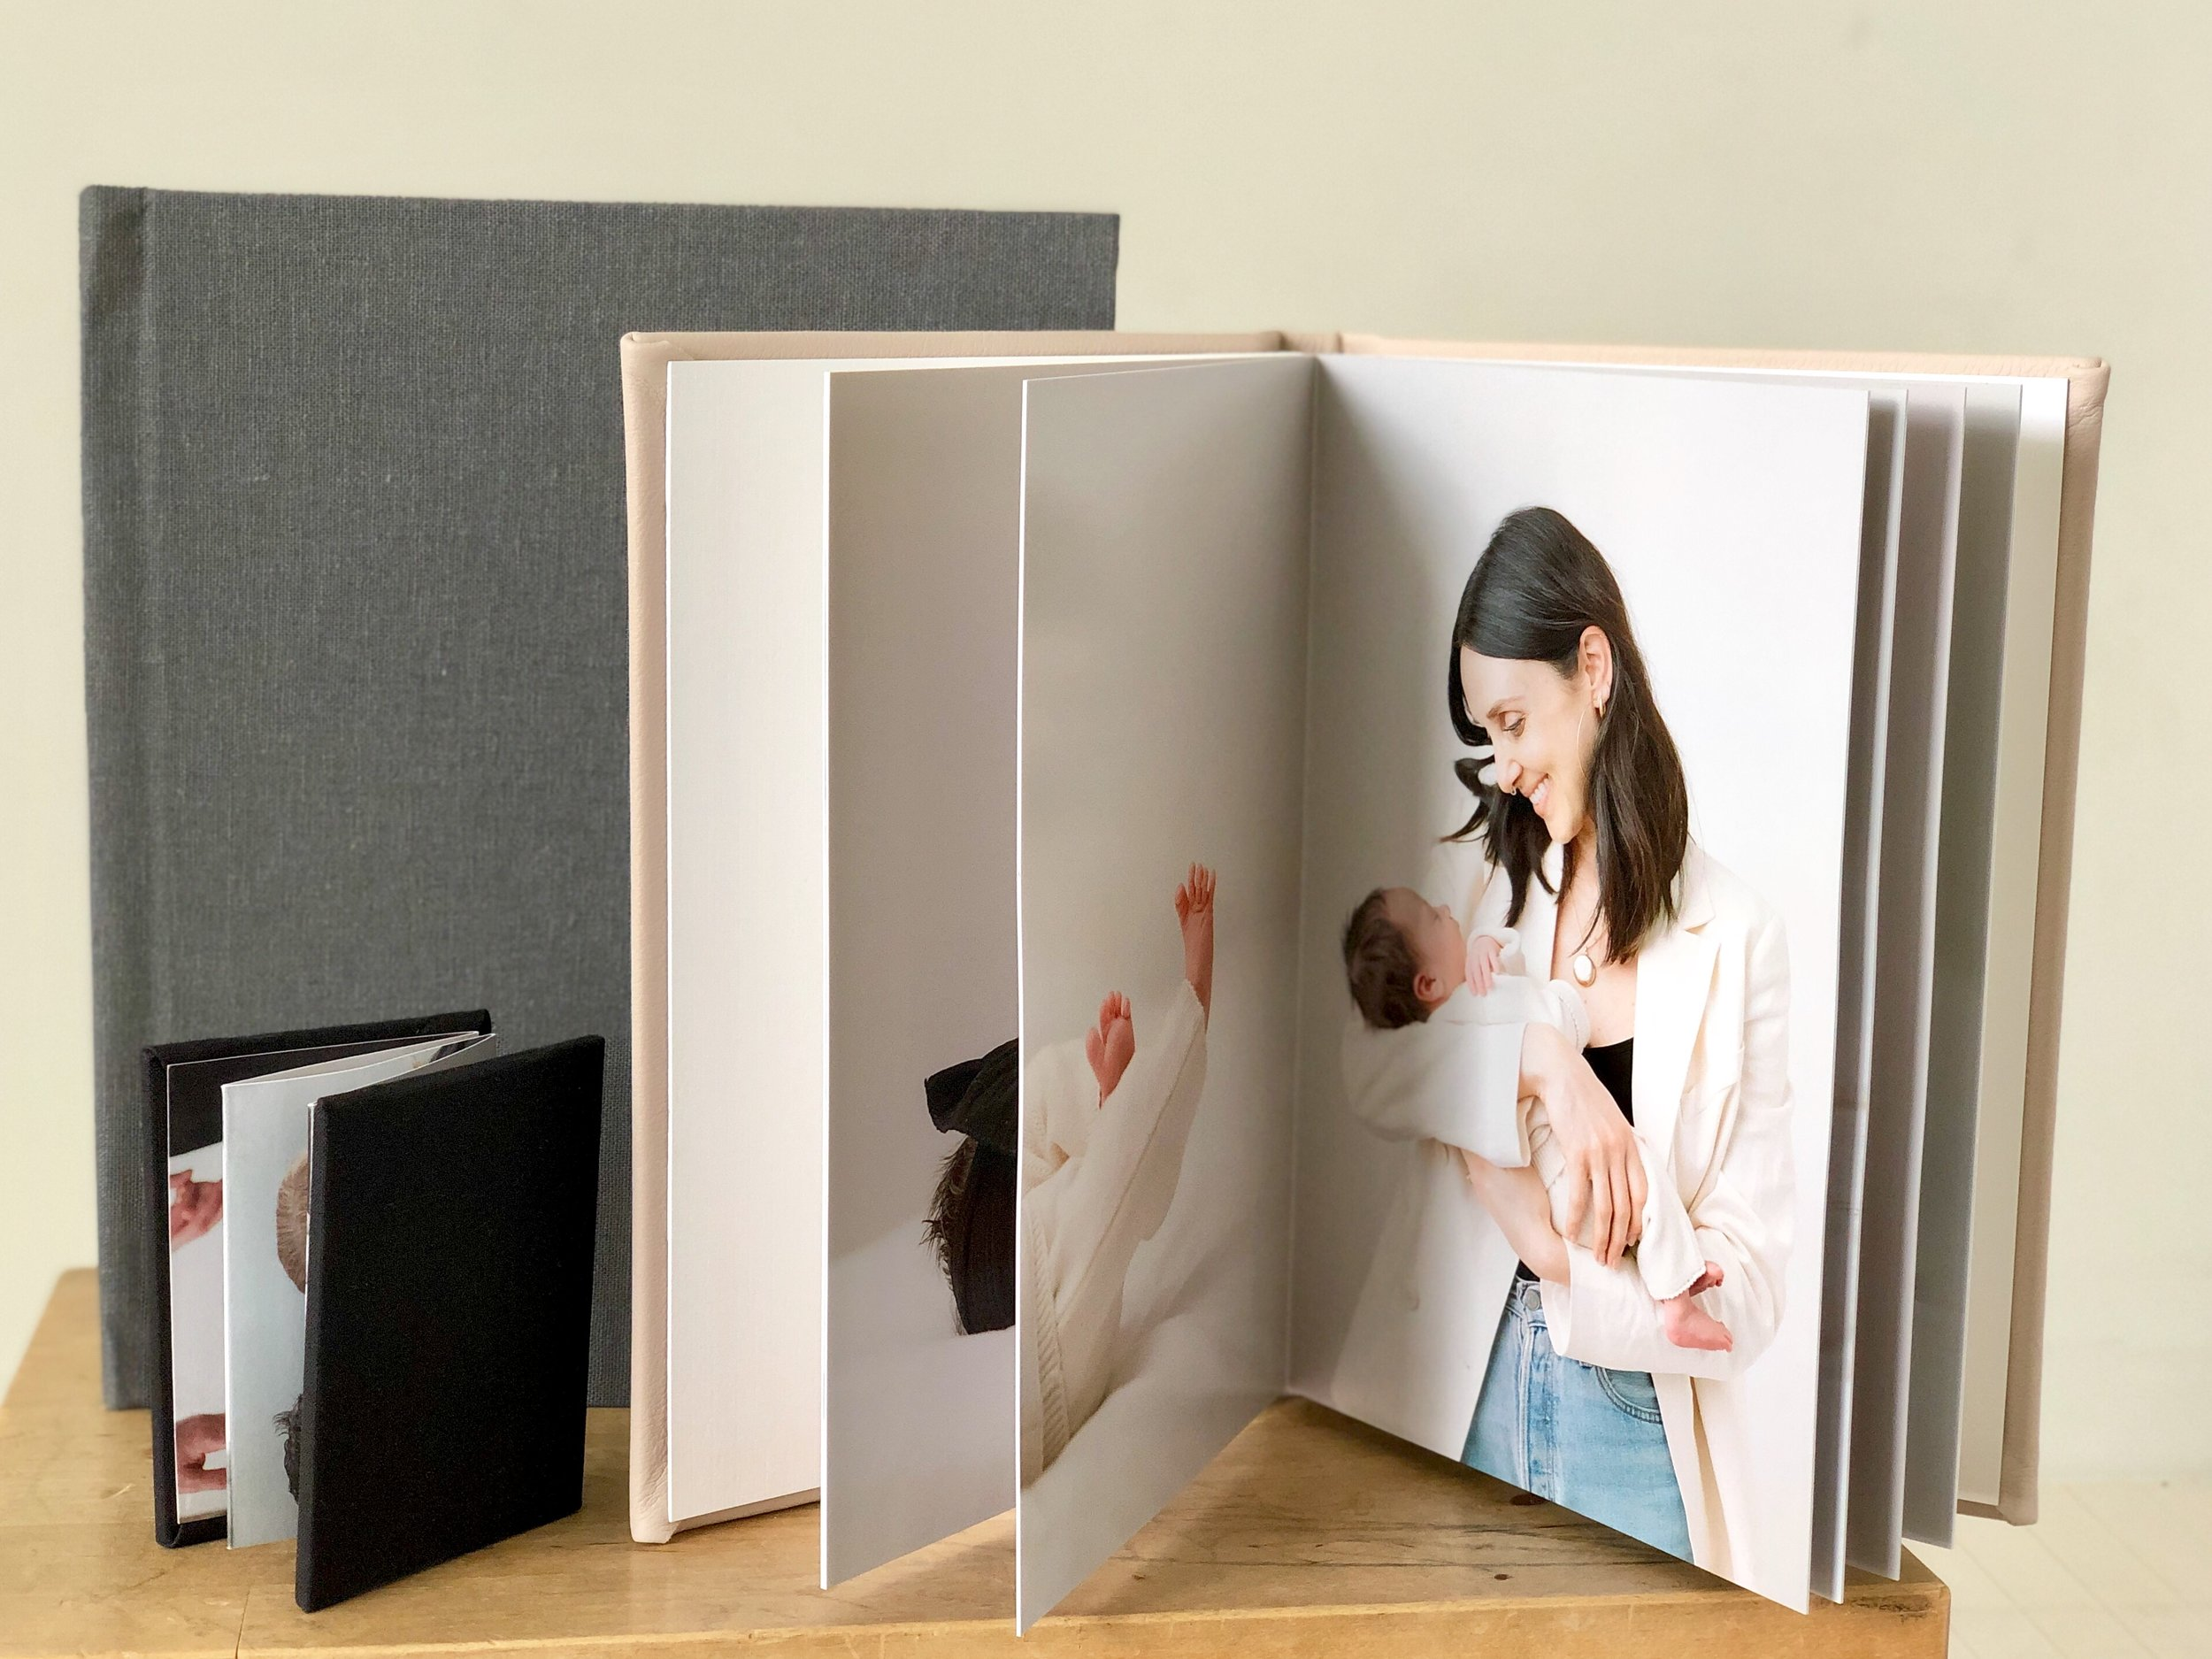 Here we have an 8x12 album with a tundra linen cover, a 6x9 album with a blush leather cover and an accordion book album.